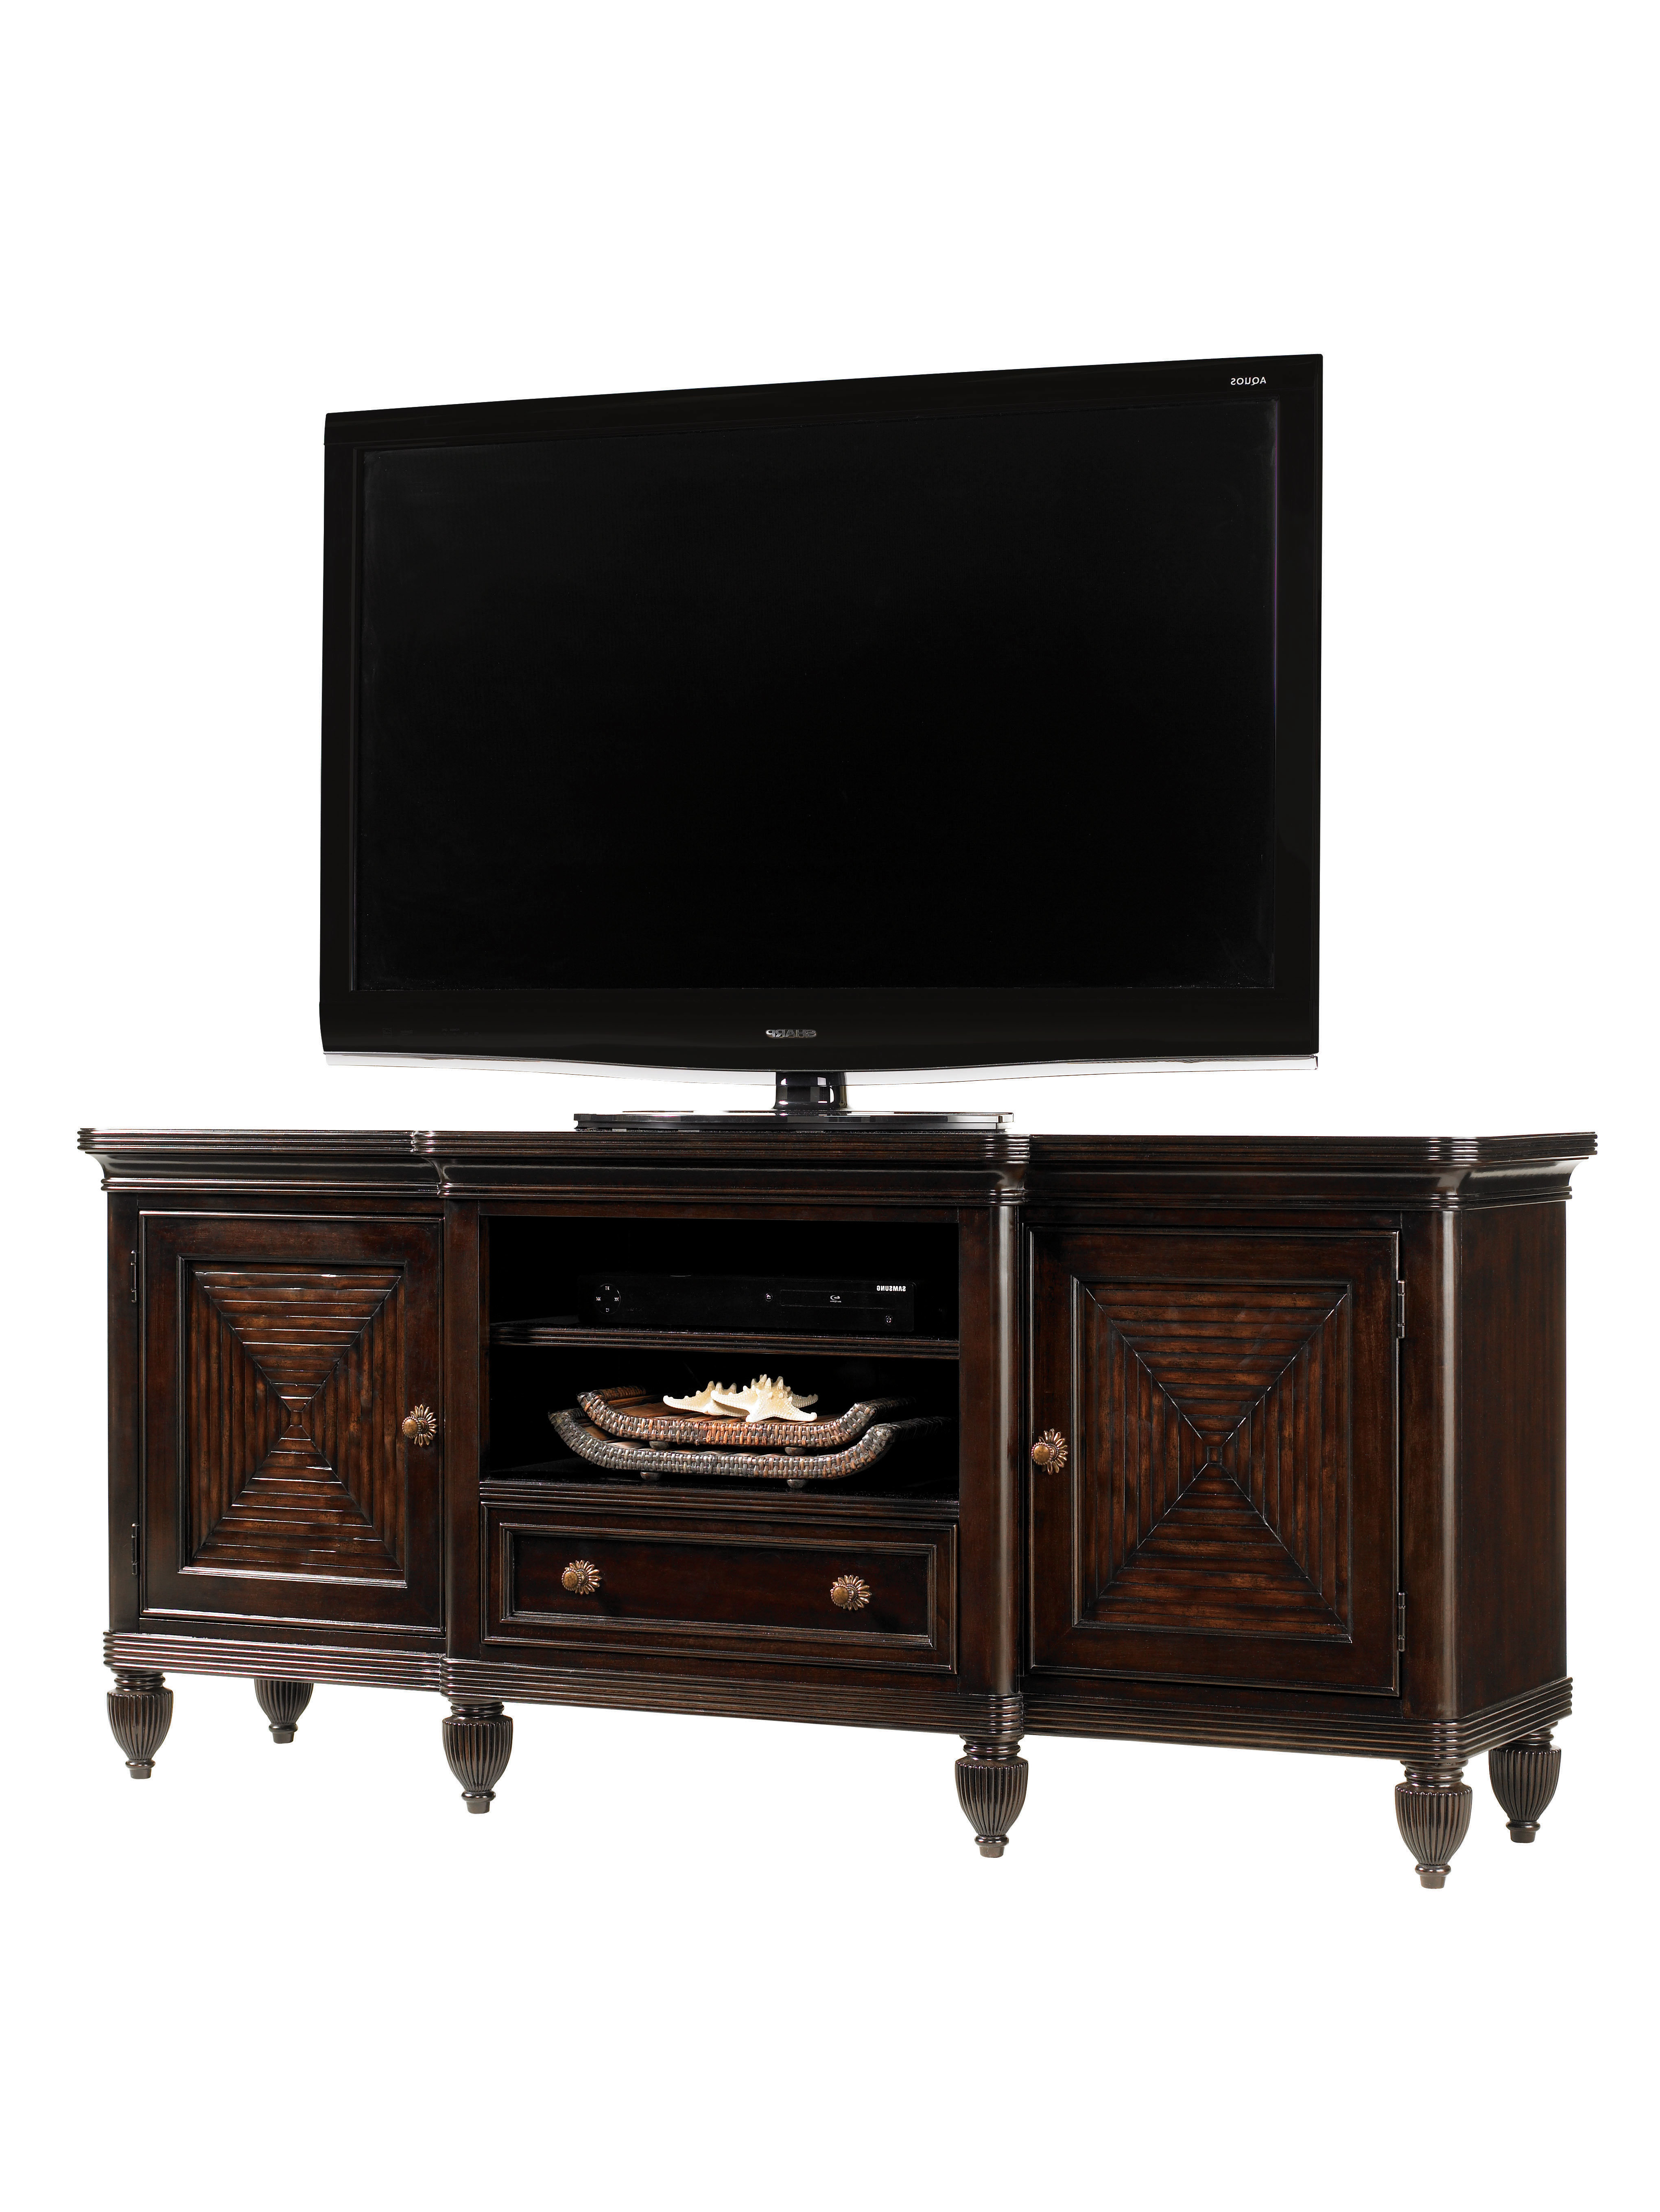 70 Inch Tv Stands | Joss & Main Intended For Bale Rustic Grey 82 Inch Tv Stands (View 18 of 20)